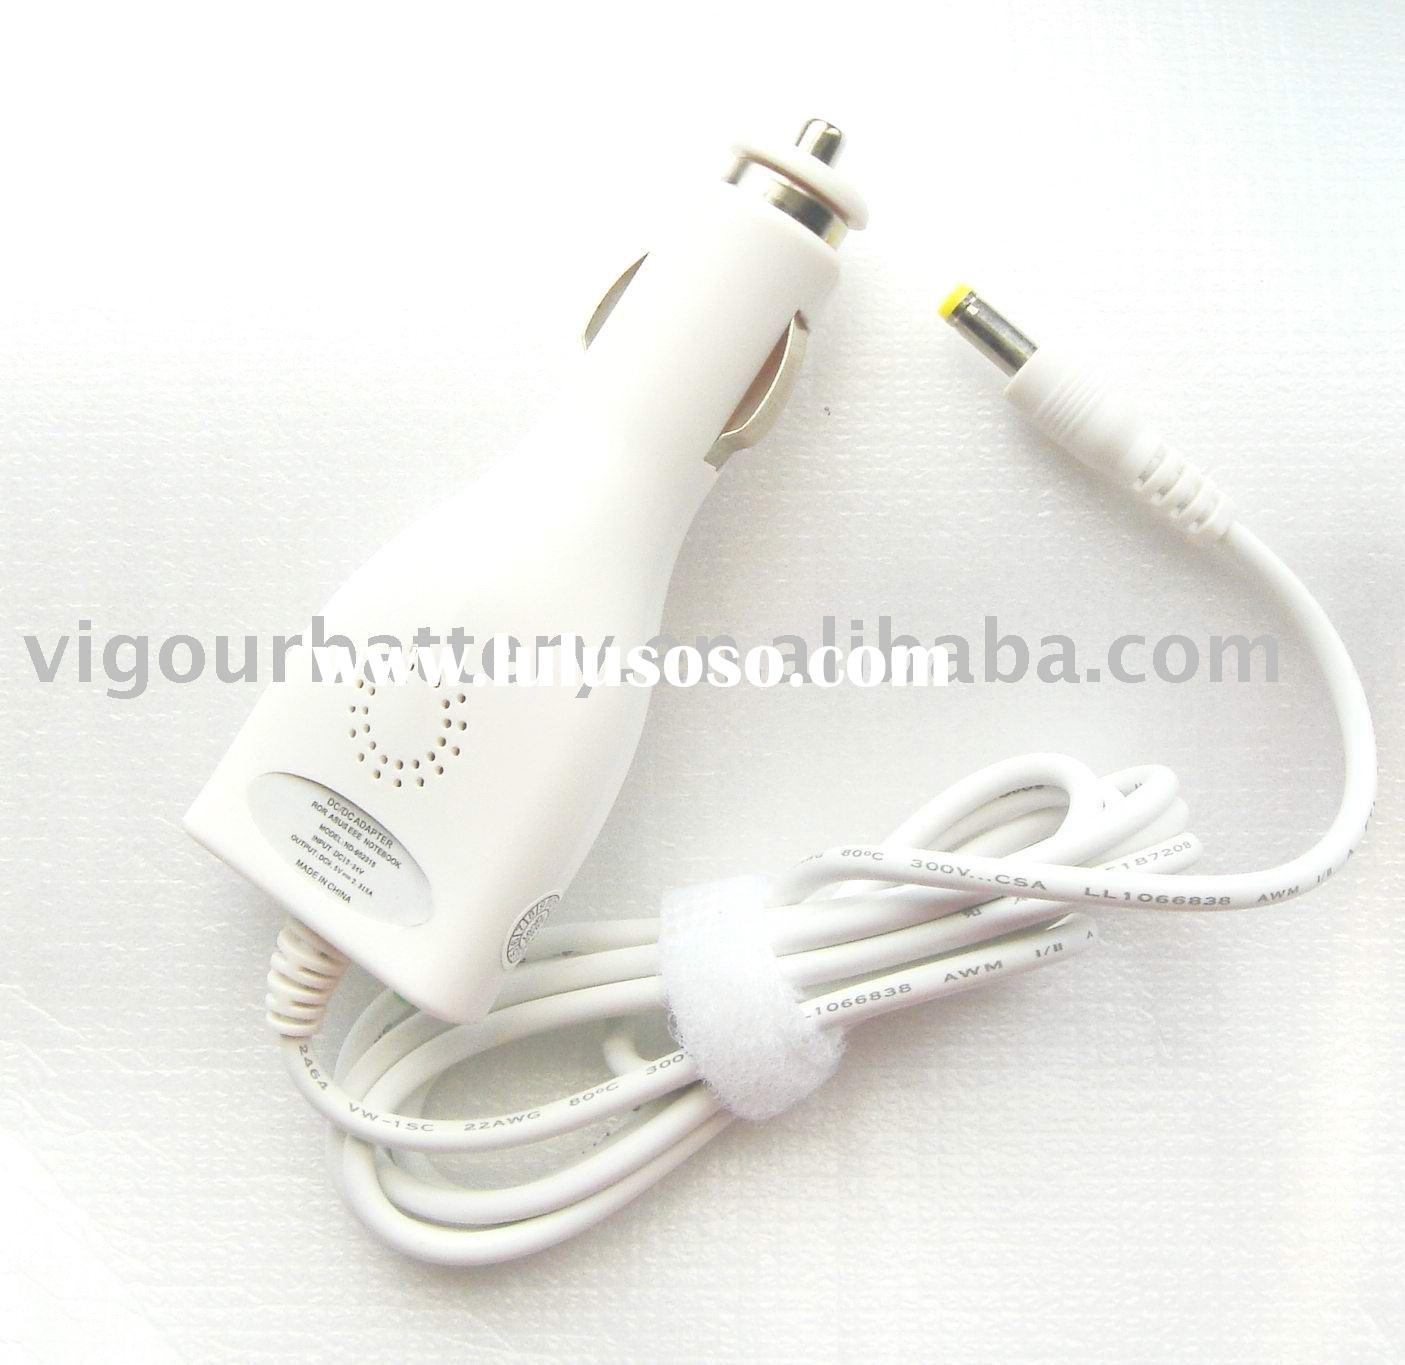 White and Black Mini laptop car DC/DC charger for Asus EEE PC 700 and Lenovo So9 S10 With GS CE UL F